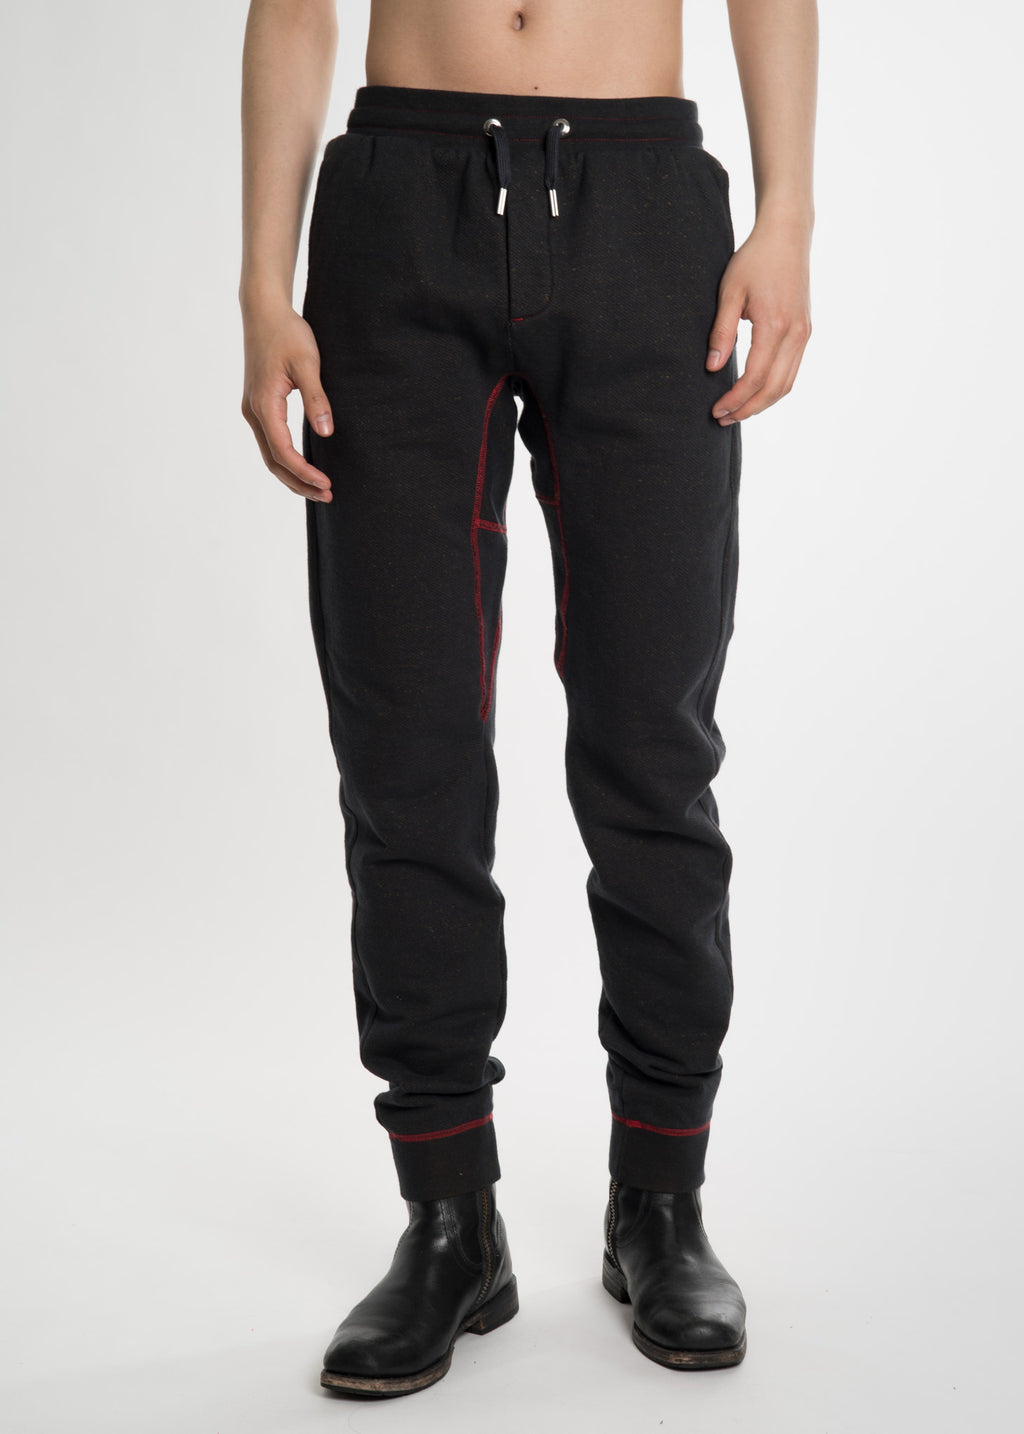 Black Jog Pants